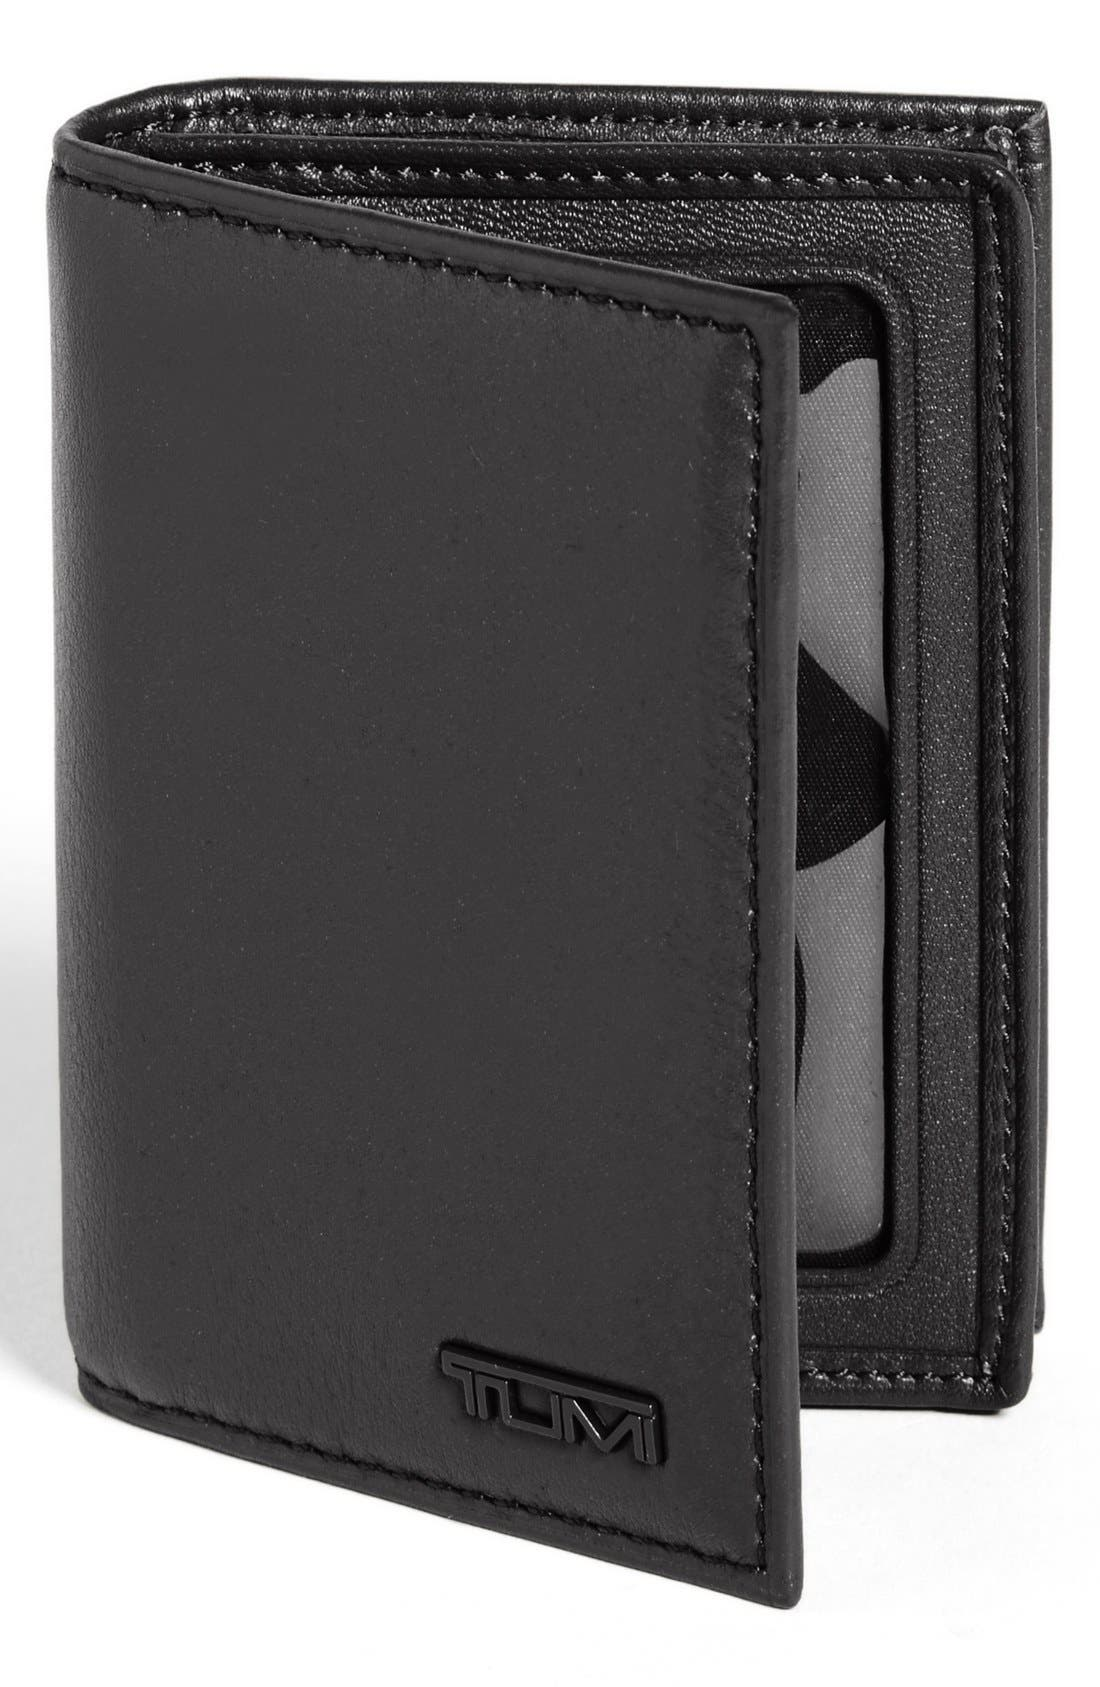 Main Image - Tumi 'Delta' Gusseted Leather Card Case